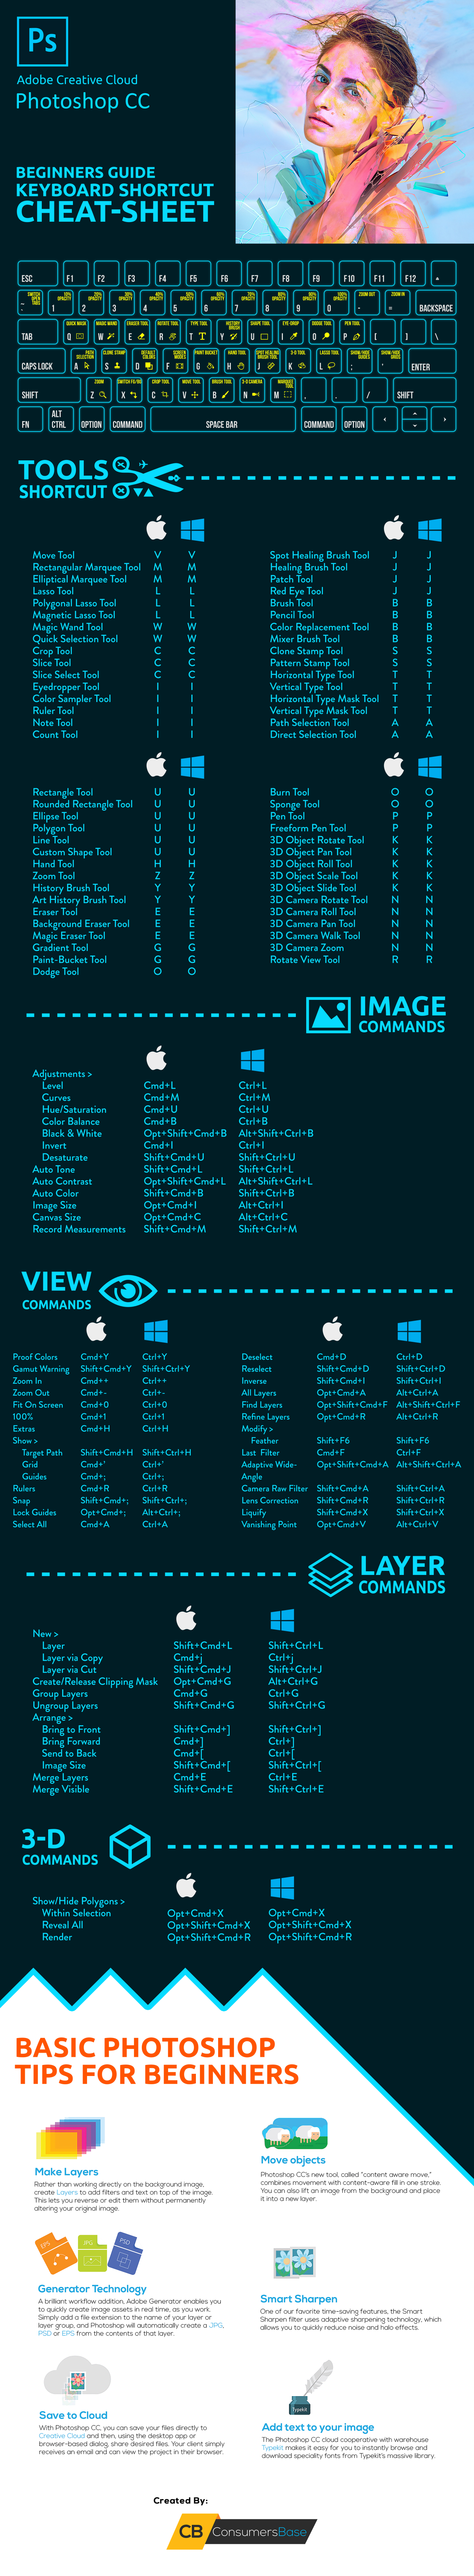 Adobe Photoshop Shortcuts - Infographic